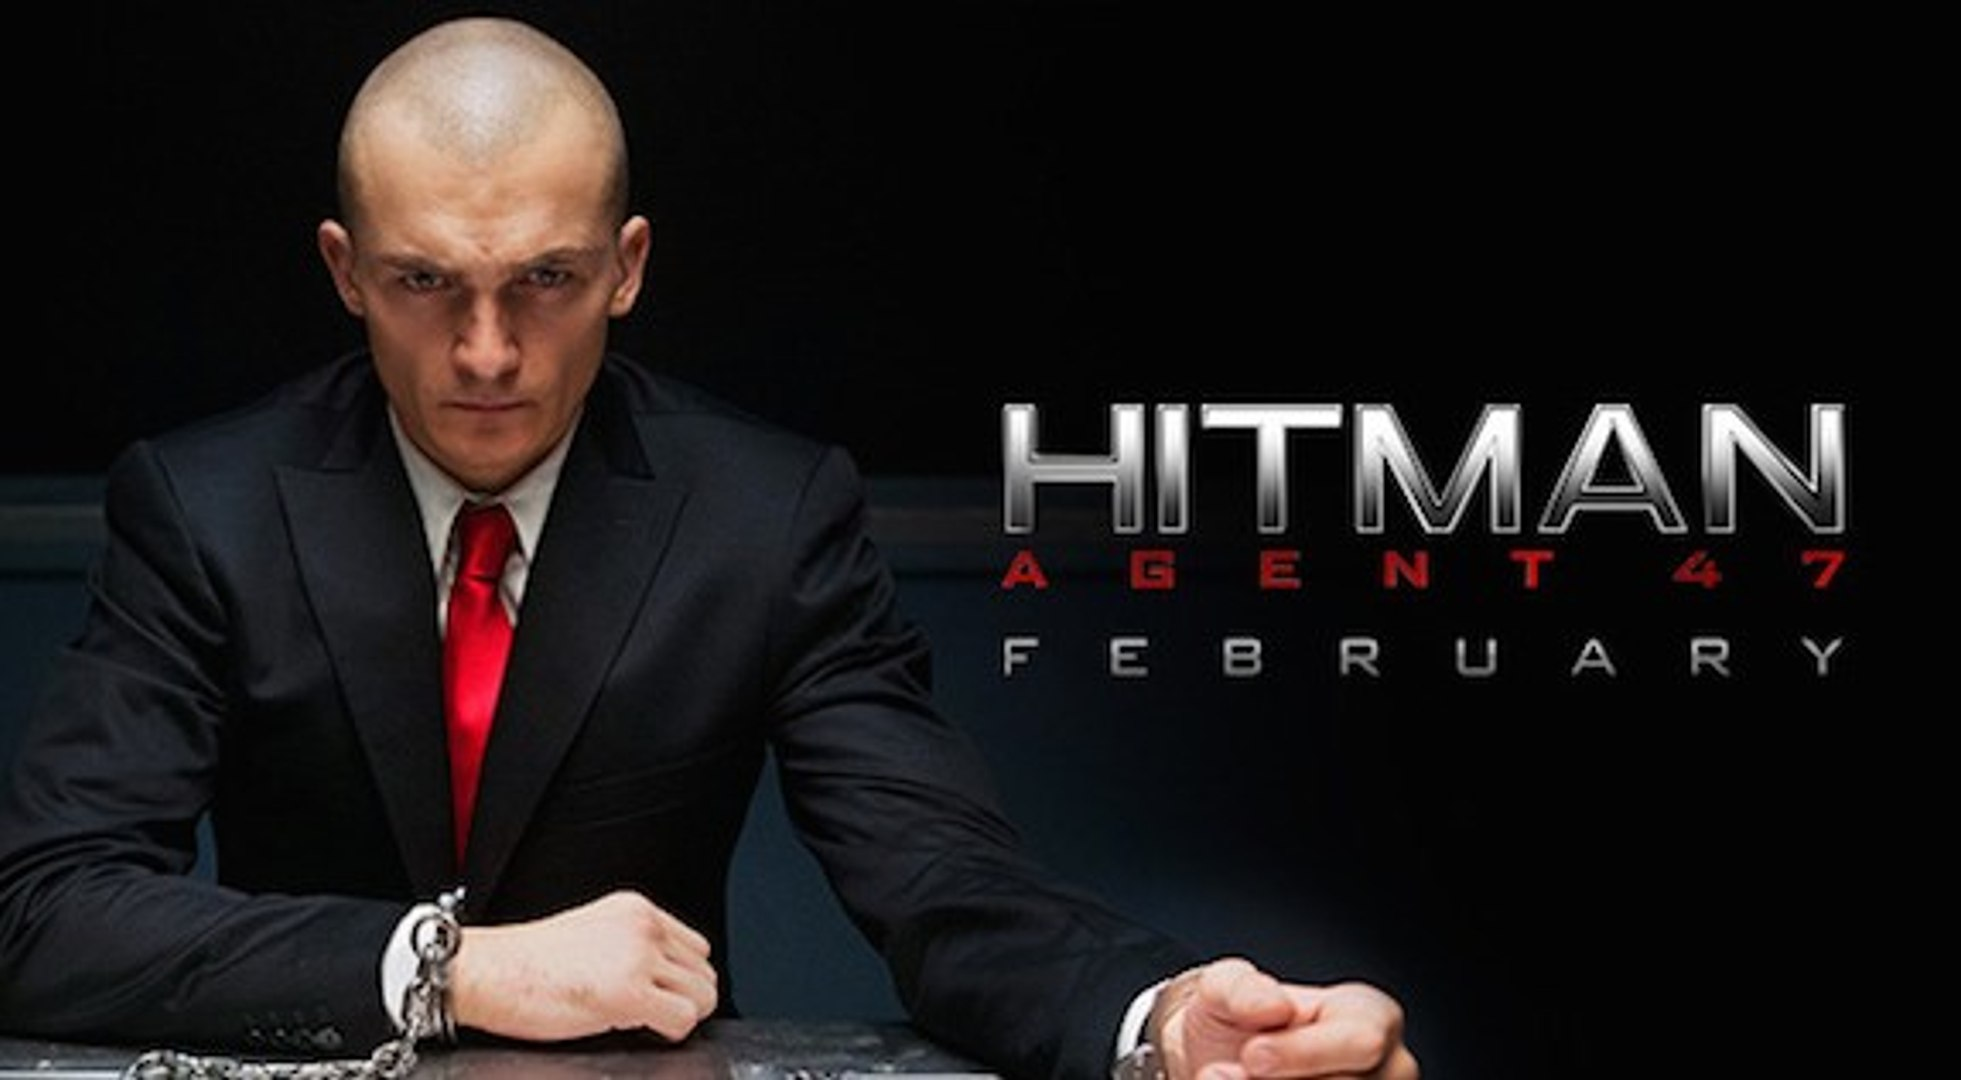 Hitman Agent 47 2015 Full Movie Hd 1080p Video Dailymotion